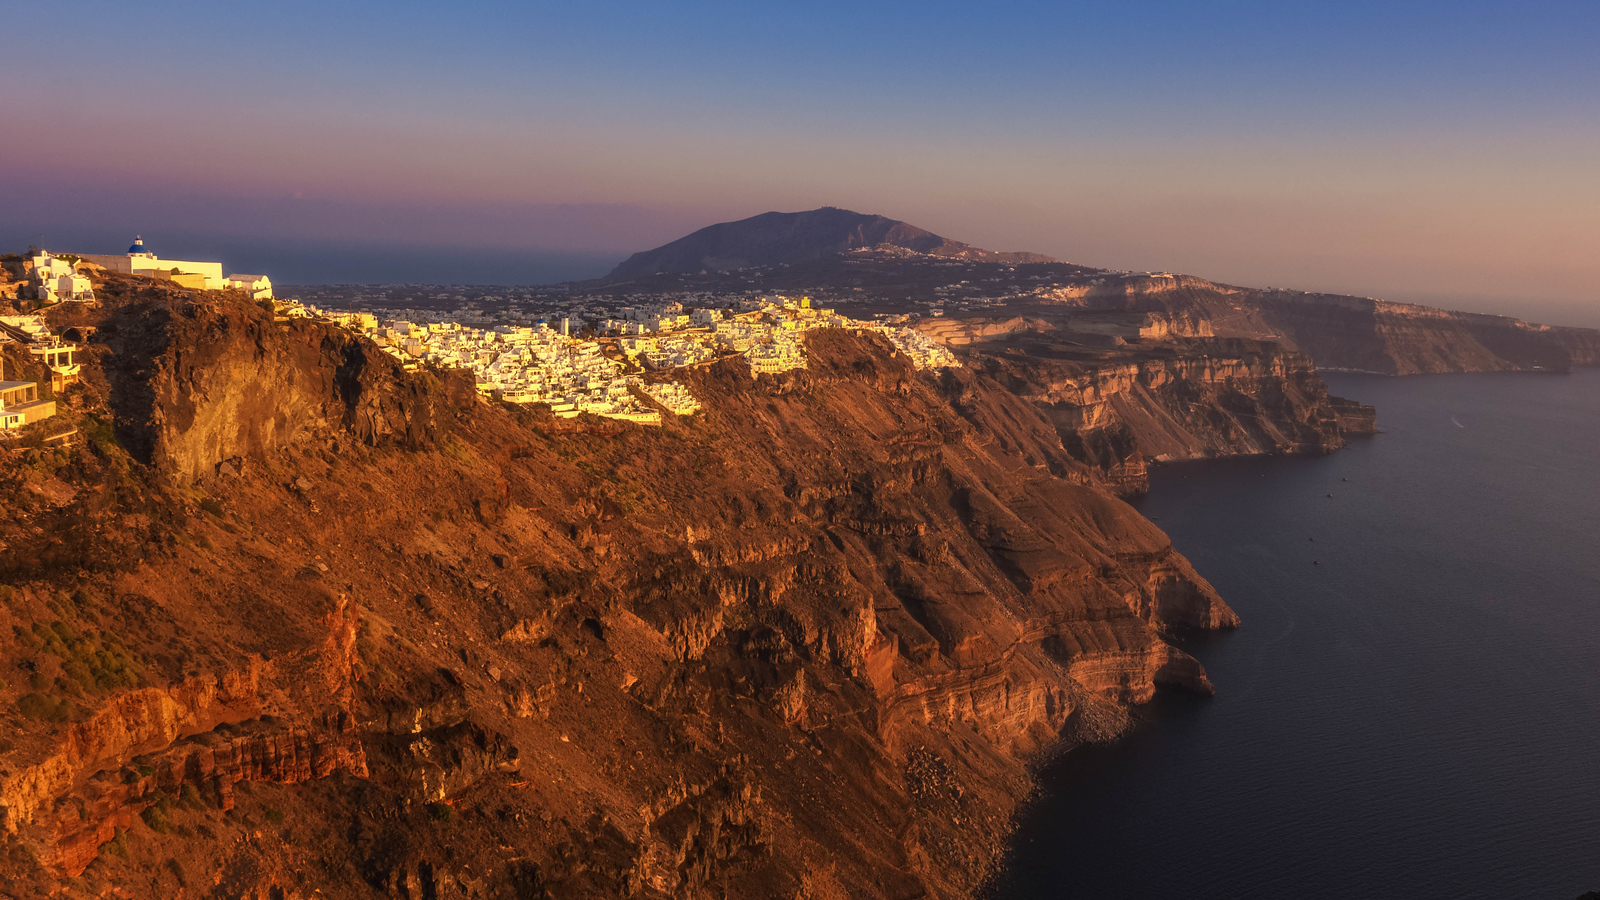 Looking over the main city of Fira at sunset.